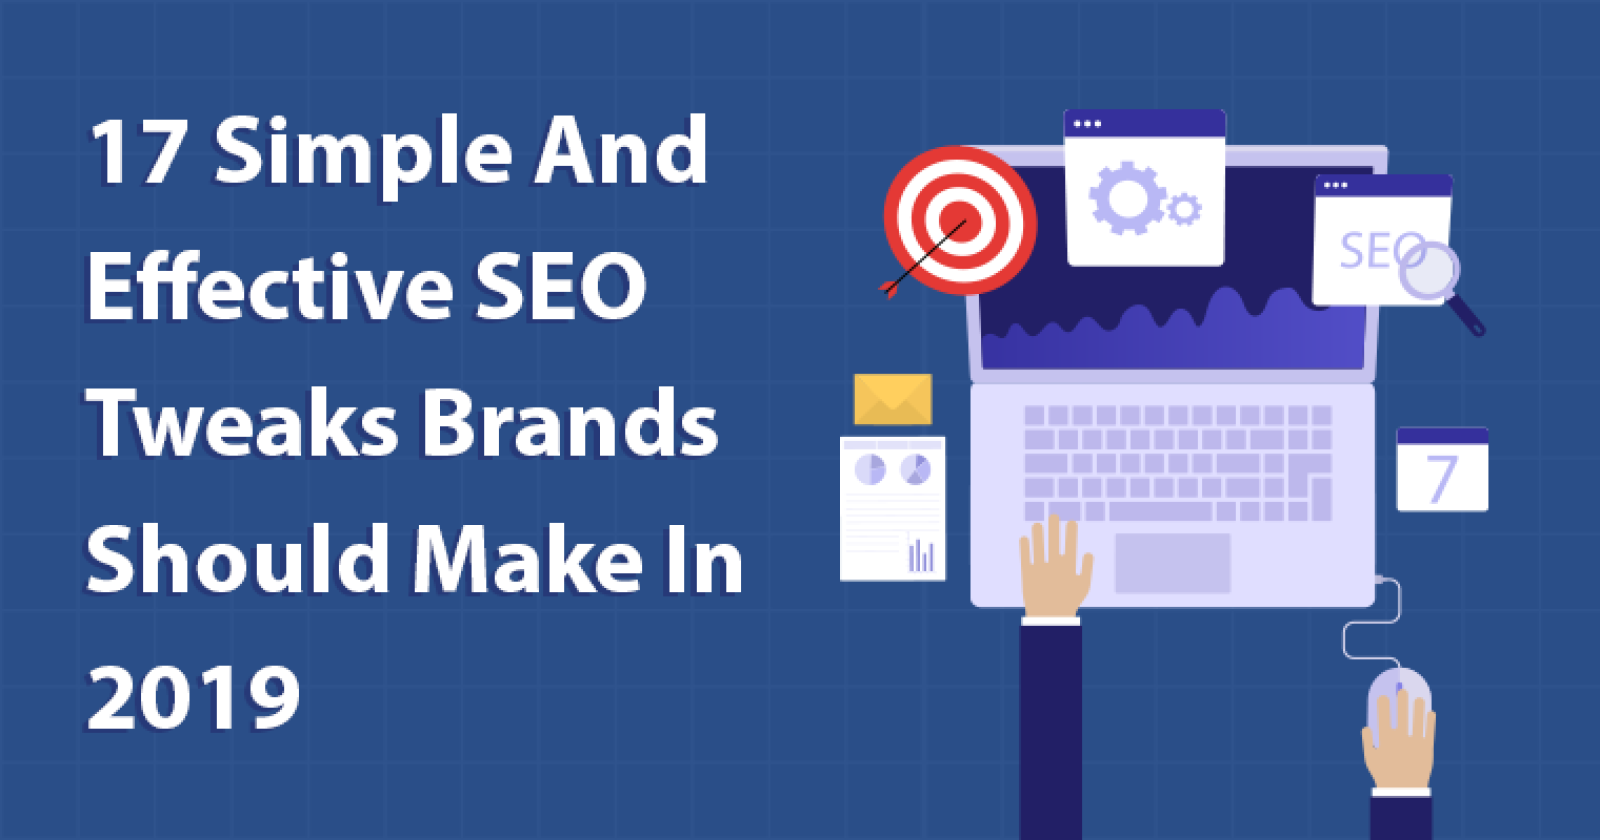 17 Simple & Effective SEO Tweaks Brands Should Make This Year - Search Engine Journal